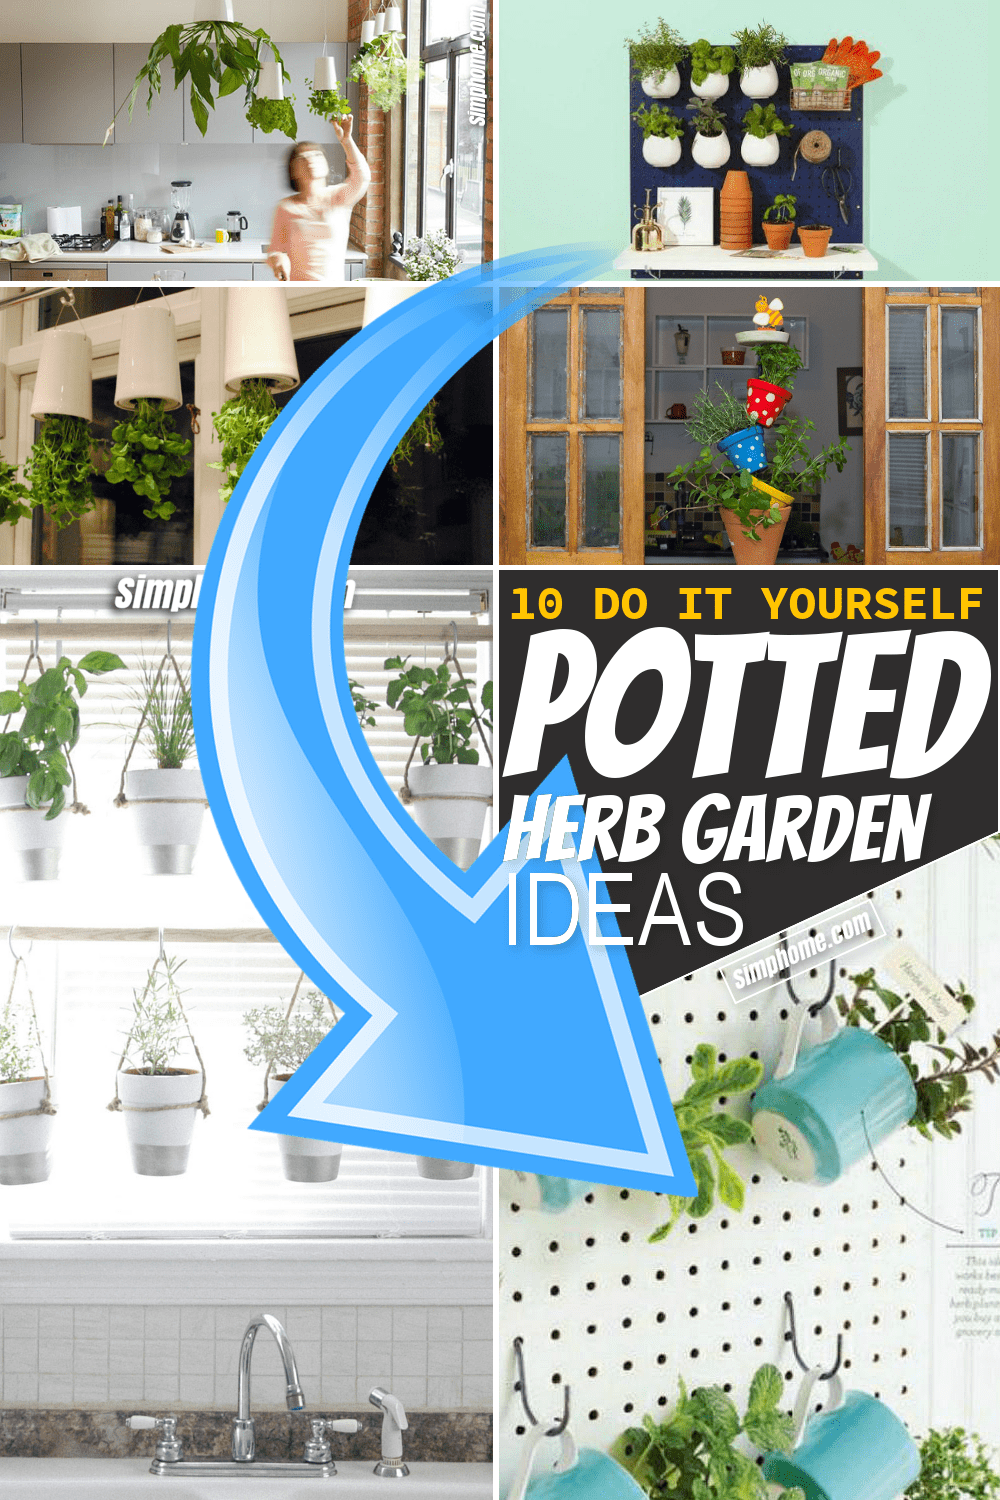 Simphome.com 10 DIY potted herb garden ideas Featured Image